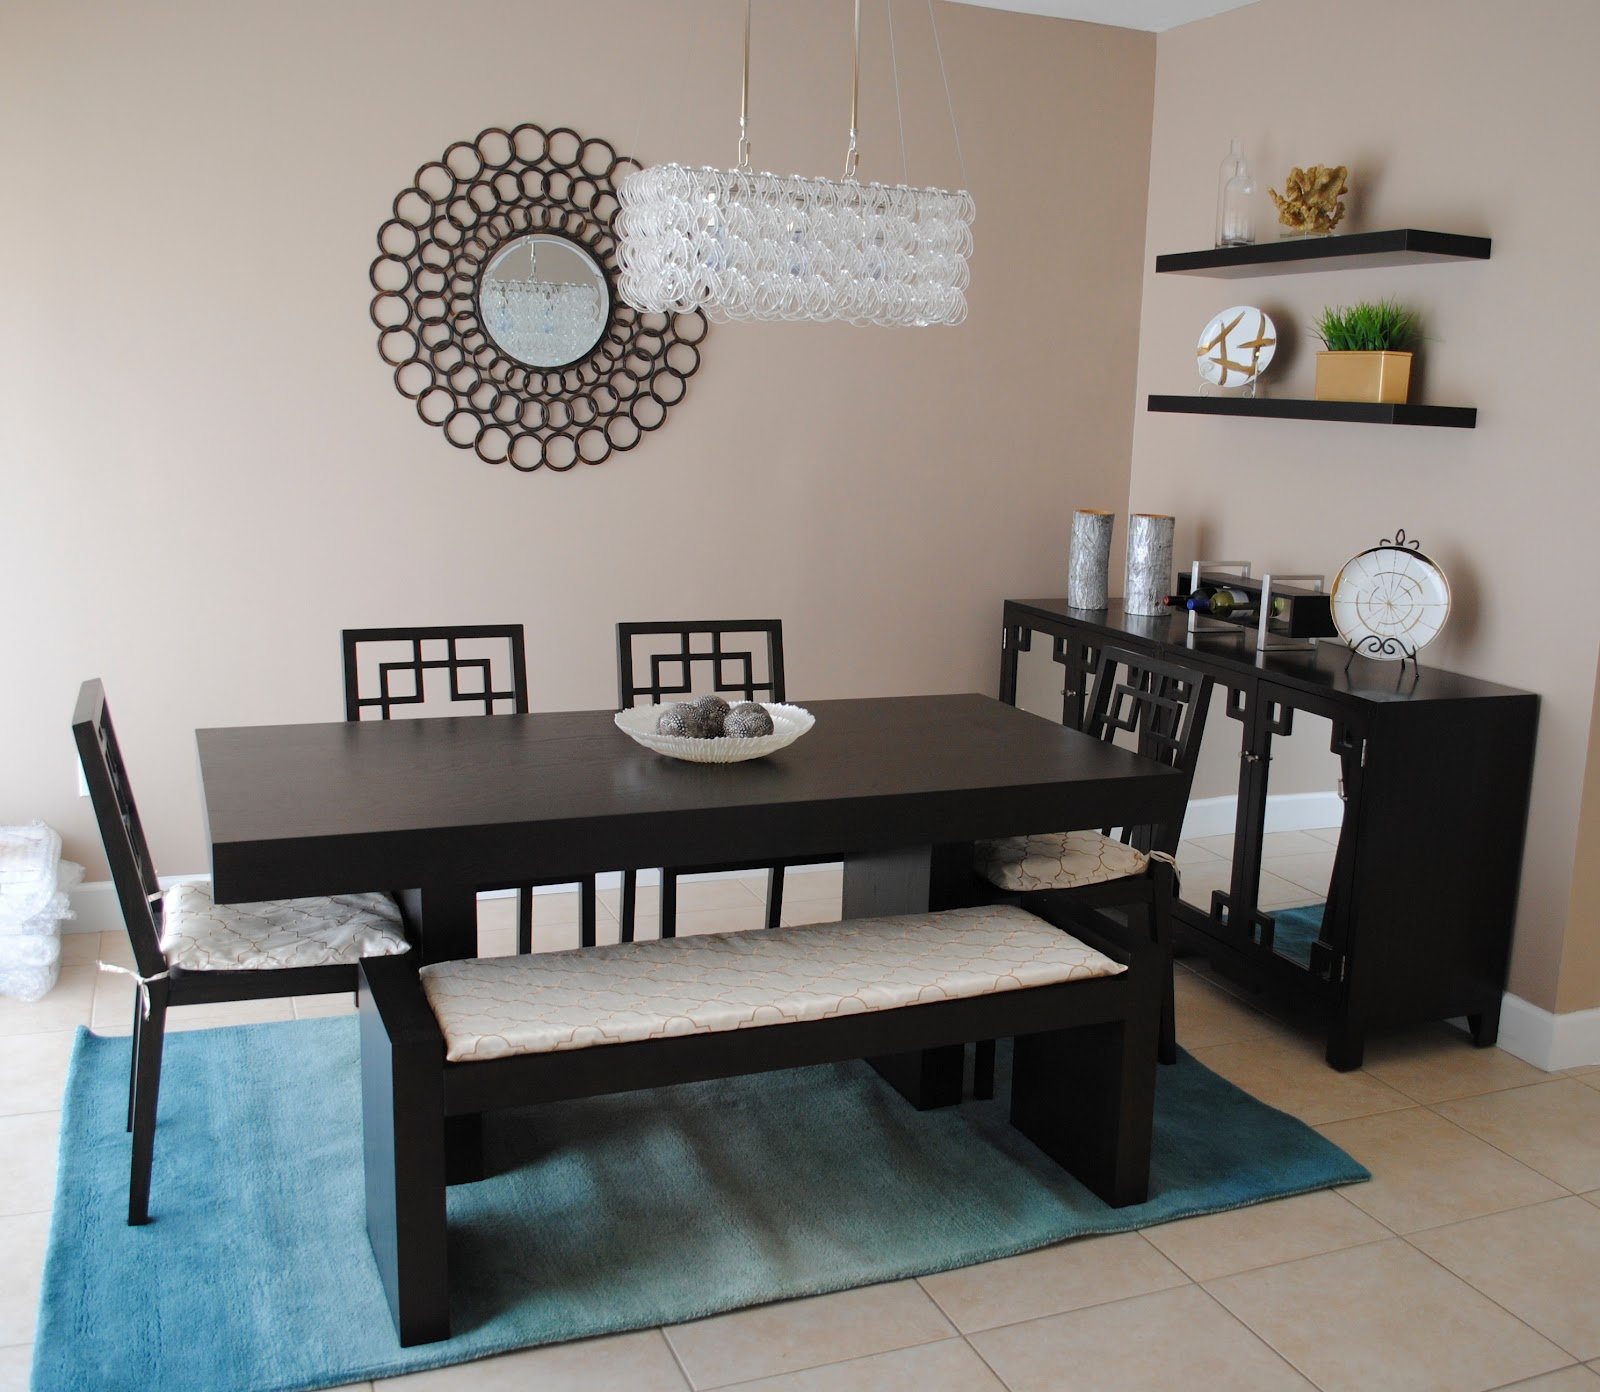 Dining Rooms Dream: Mind My Beeswax: My Dream Dining Room